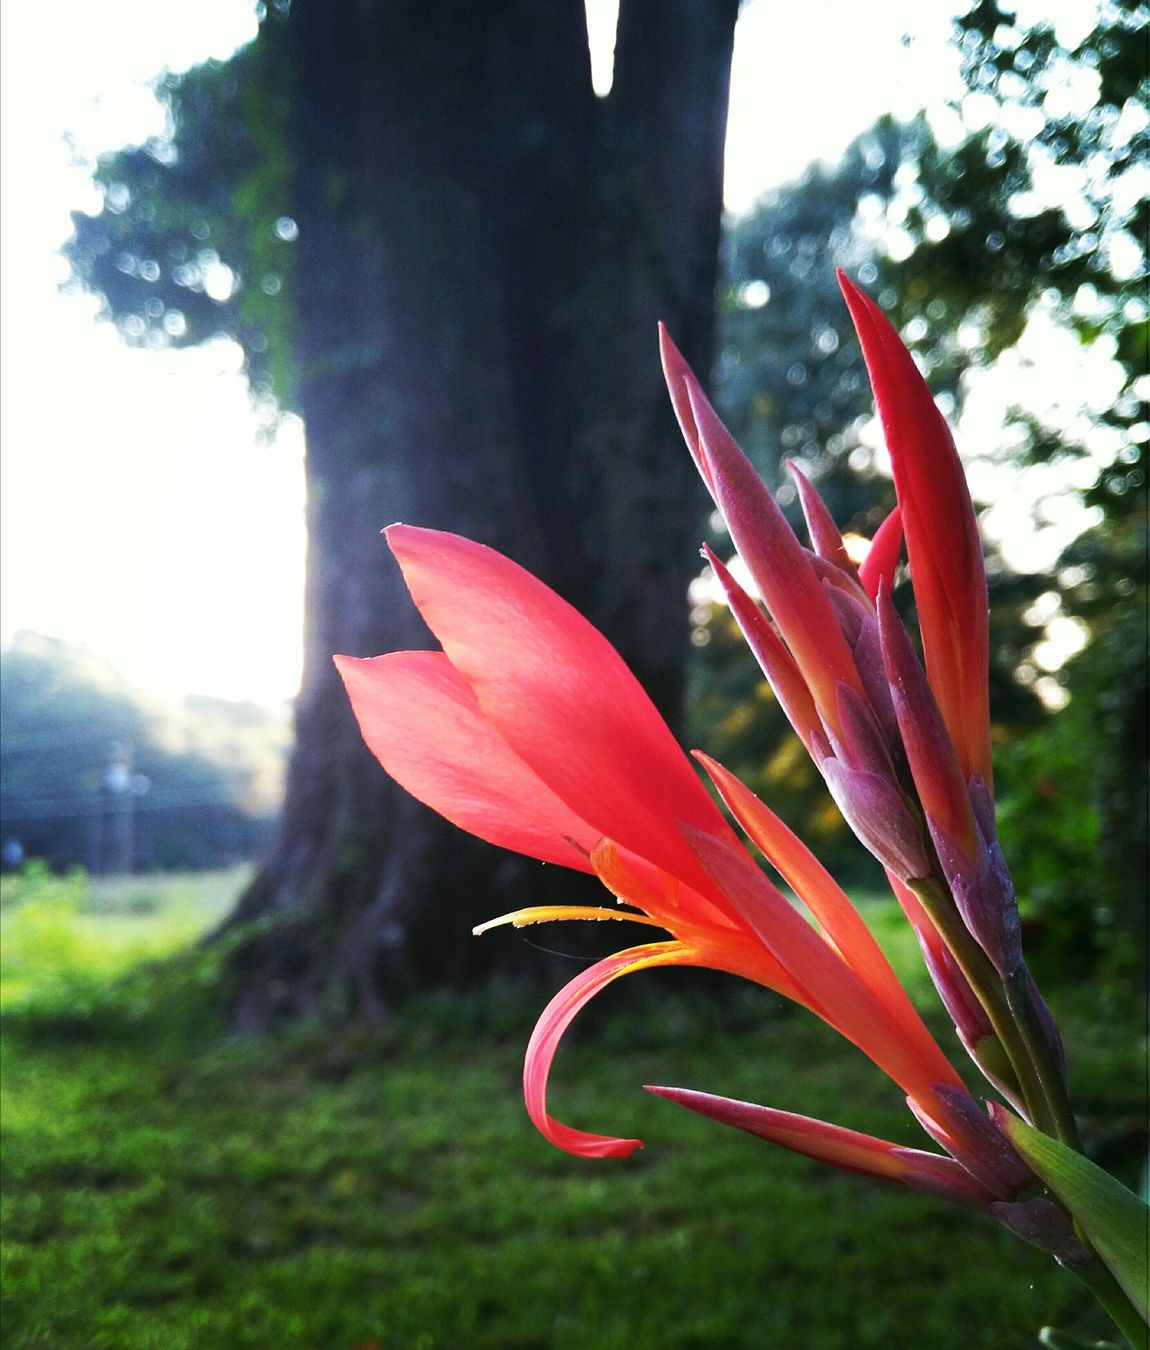 Grass Beauty In Nature Fragility Freshness Sky Tree No People Close-up Flower Plant Nature Petal Outdoors Growth Flower Head Day Canna Canna Lily Not A Lily Ginger Red Coral Colored Neon Life